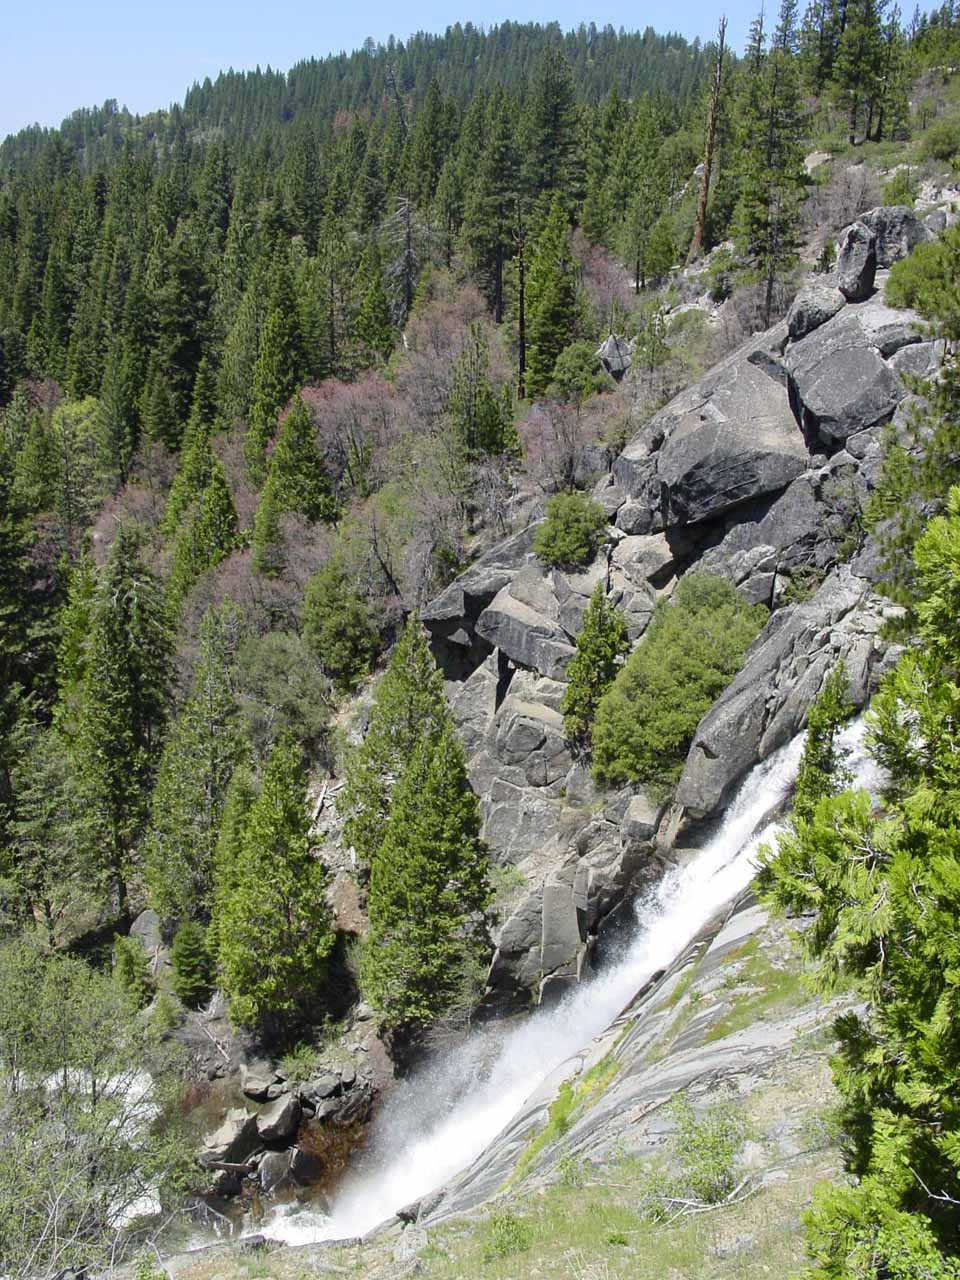 Another profile look at Alder Creek Falls